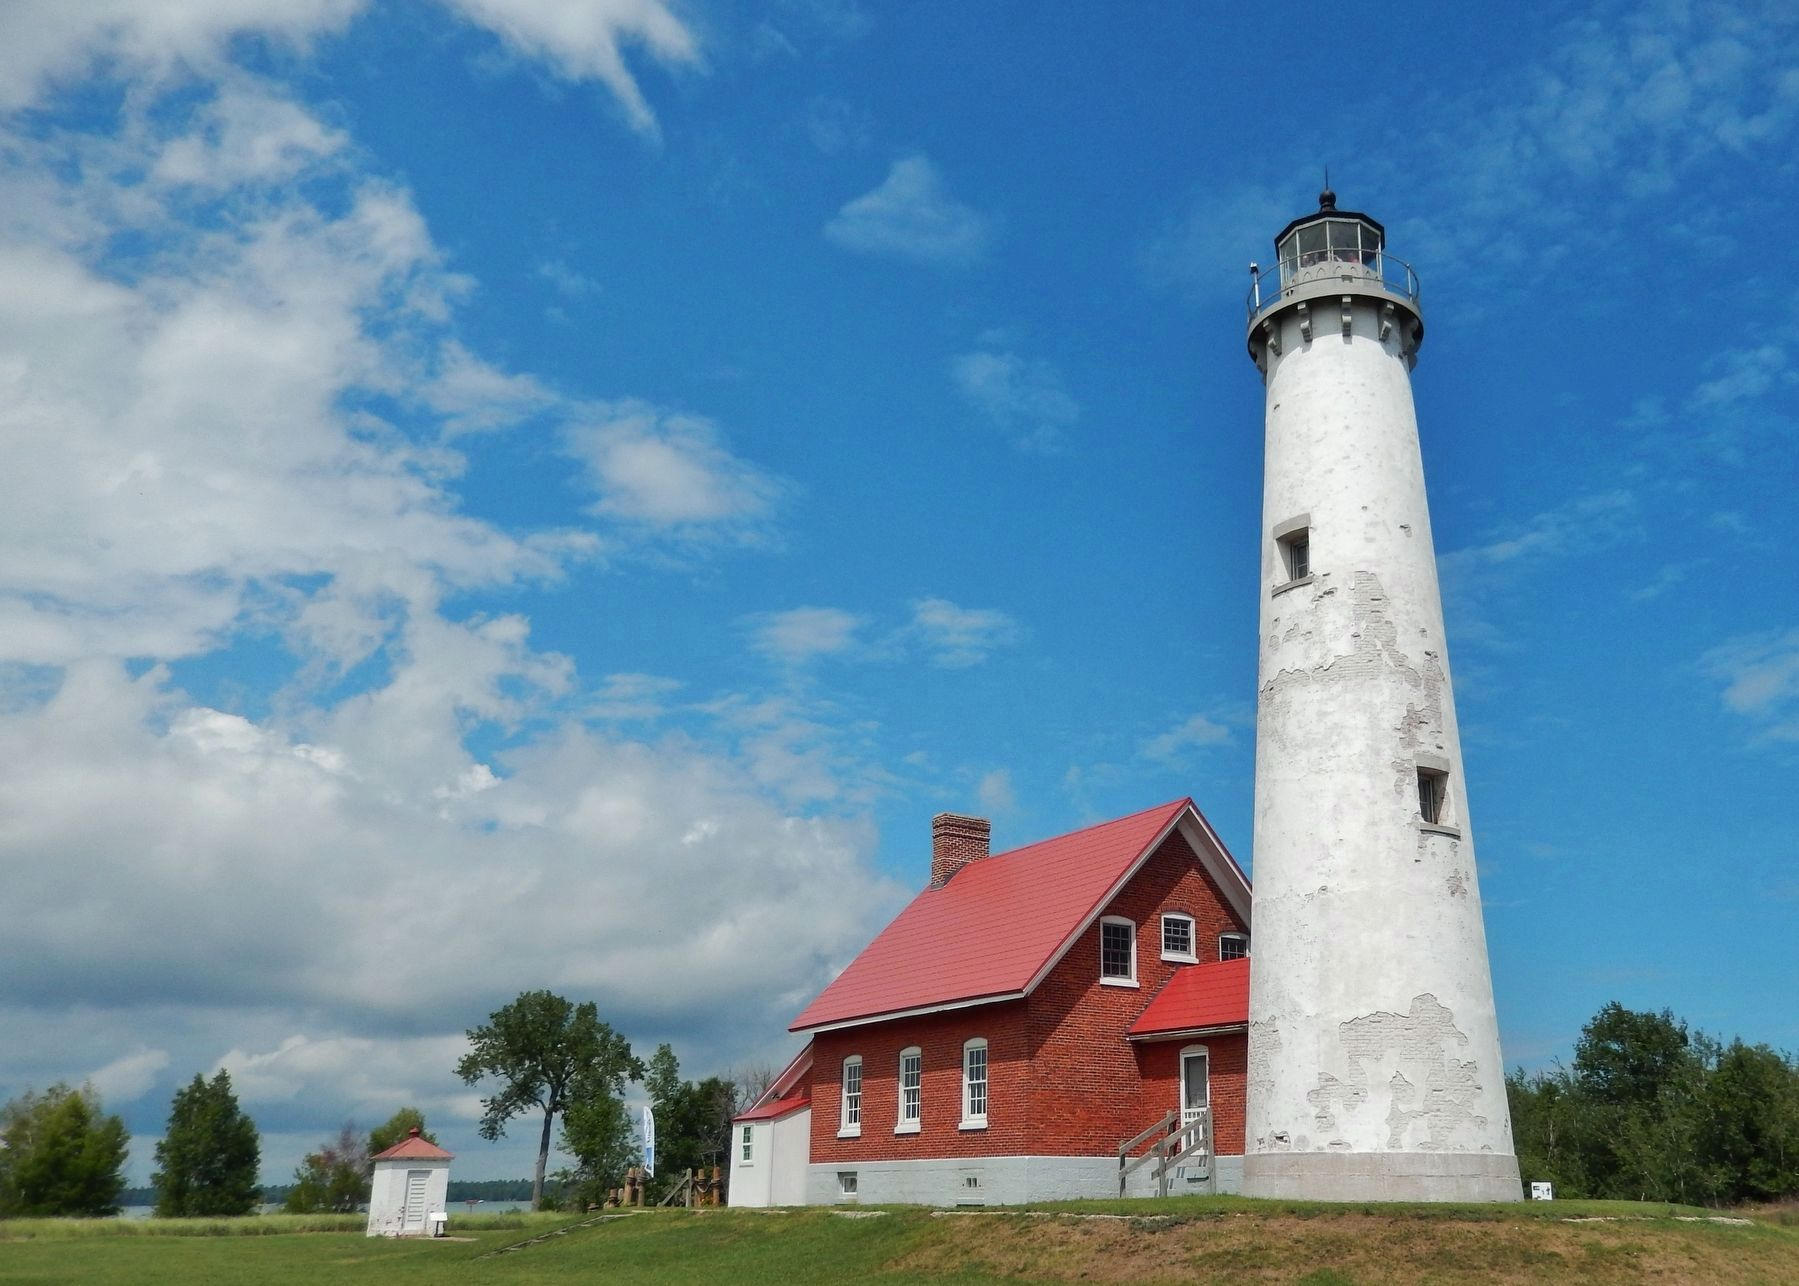 Tawas Point Lighthouse (<i>wide view; Oil House on left side</i>) image. Click for full size.